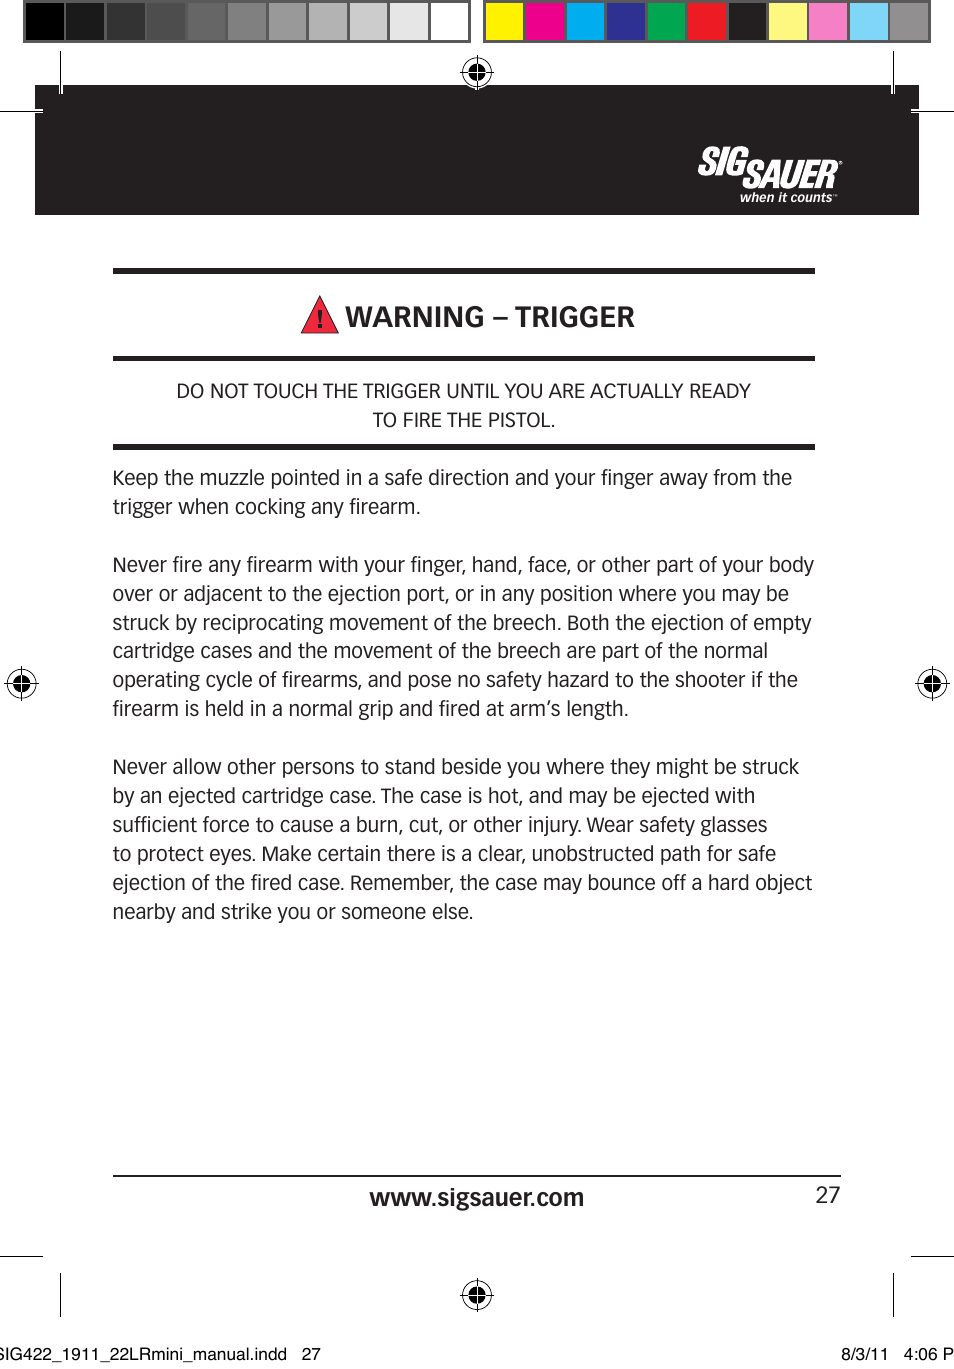 warning trigger sig sauer 1911 22lr user manual page 27 64 rh manualsdir com sig sauer 1911 airsoft review sig sauer 1911 22 owners manual